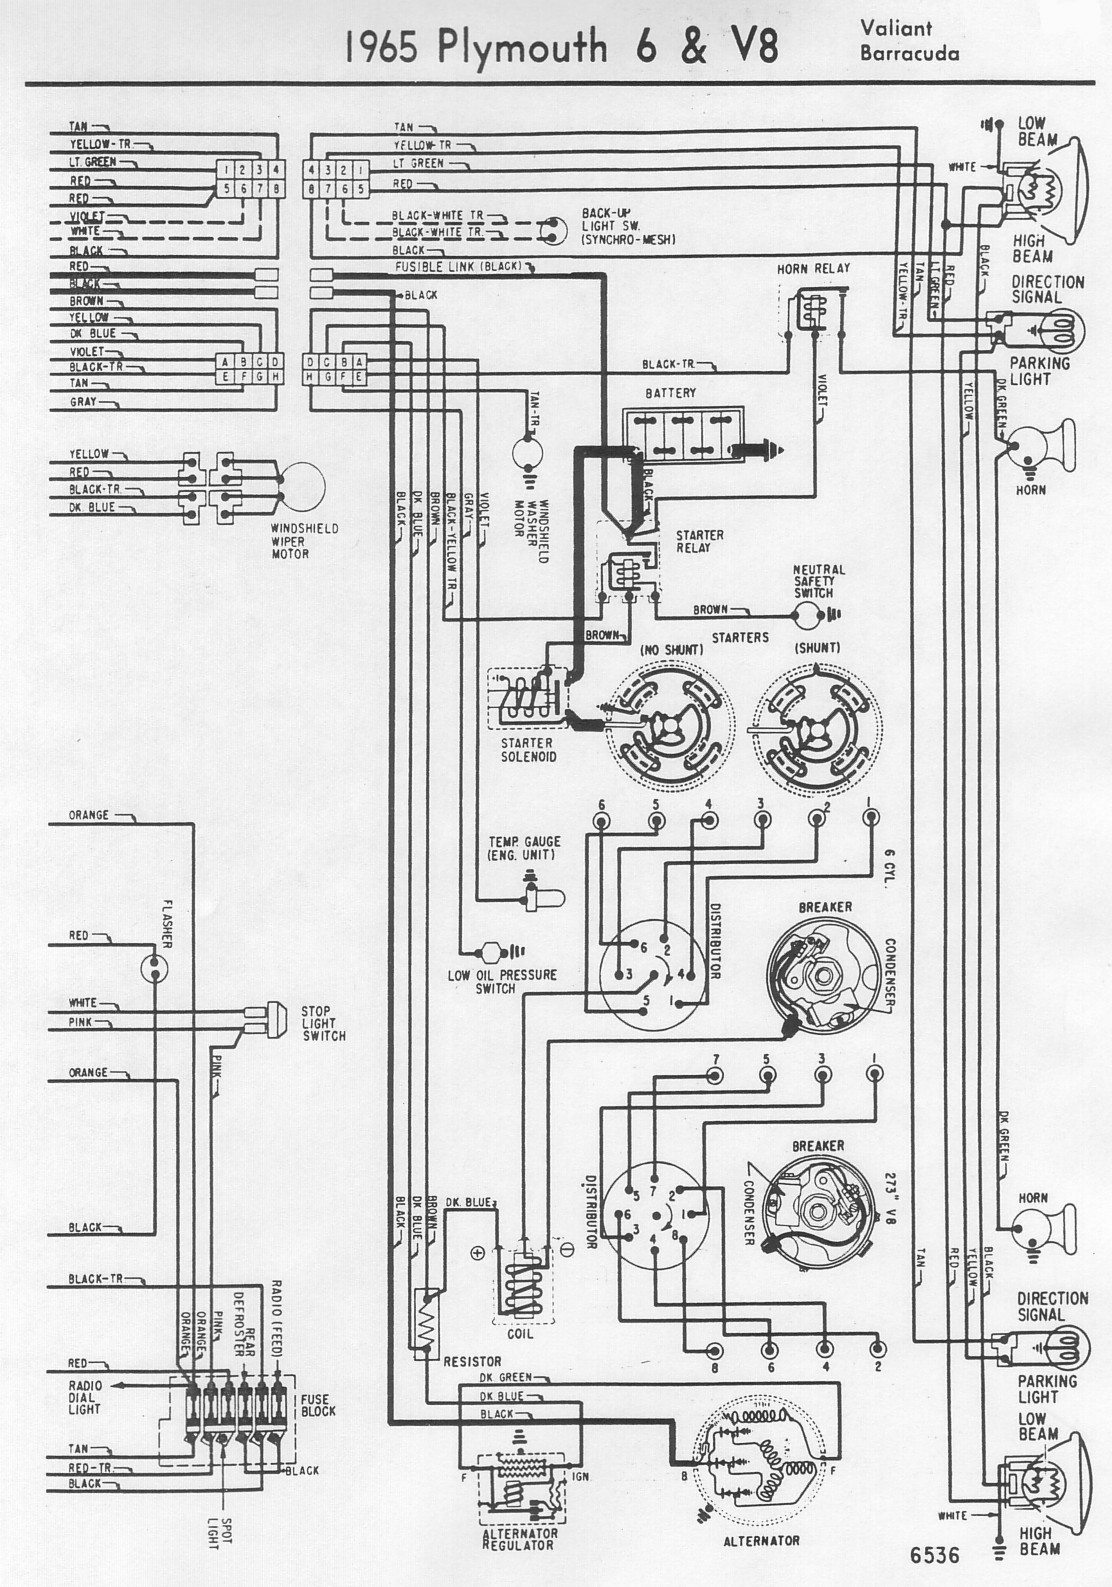 1965 Barracuda Wiring Diagram Free Wiring Diagram For You